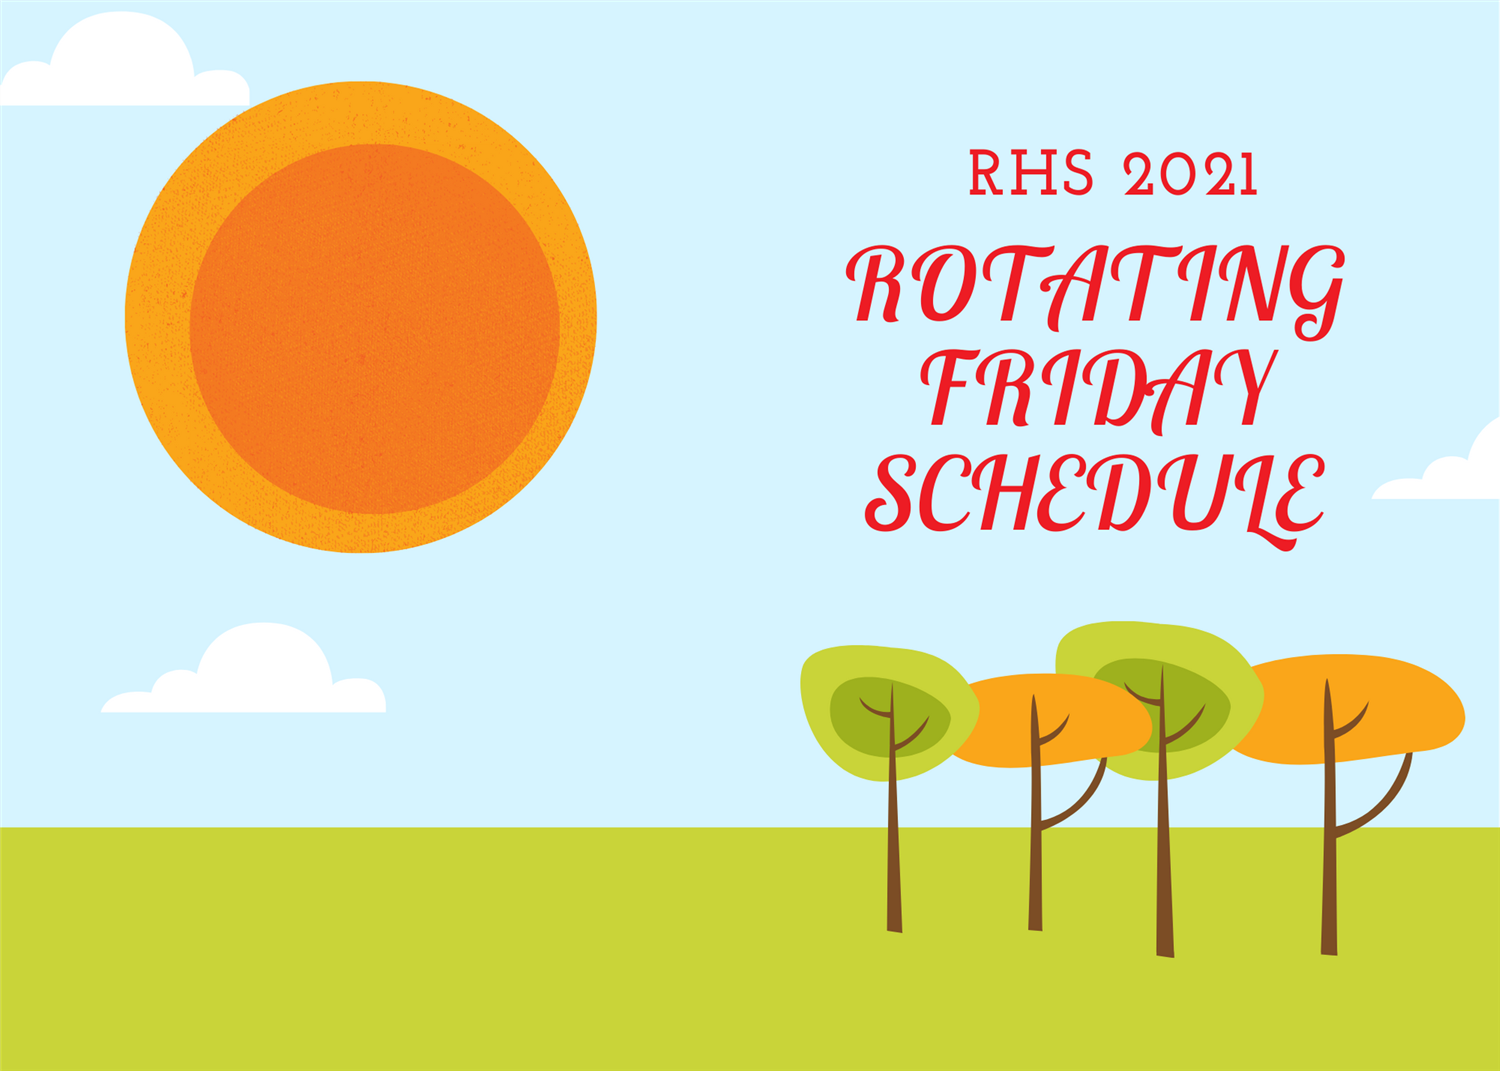 Rotating Friday Schedule